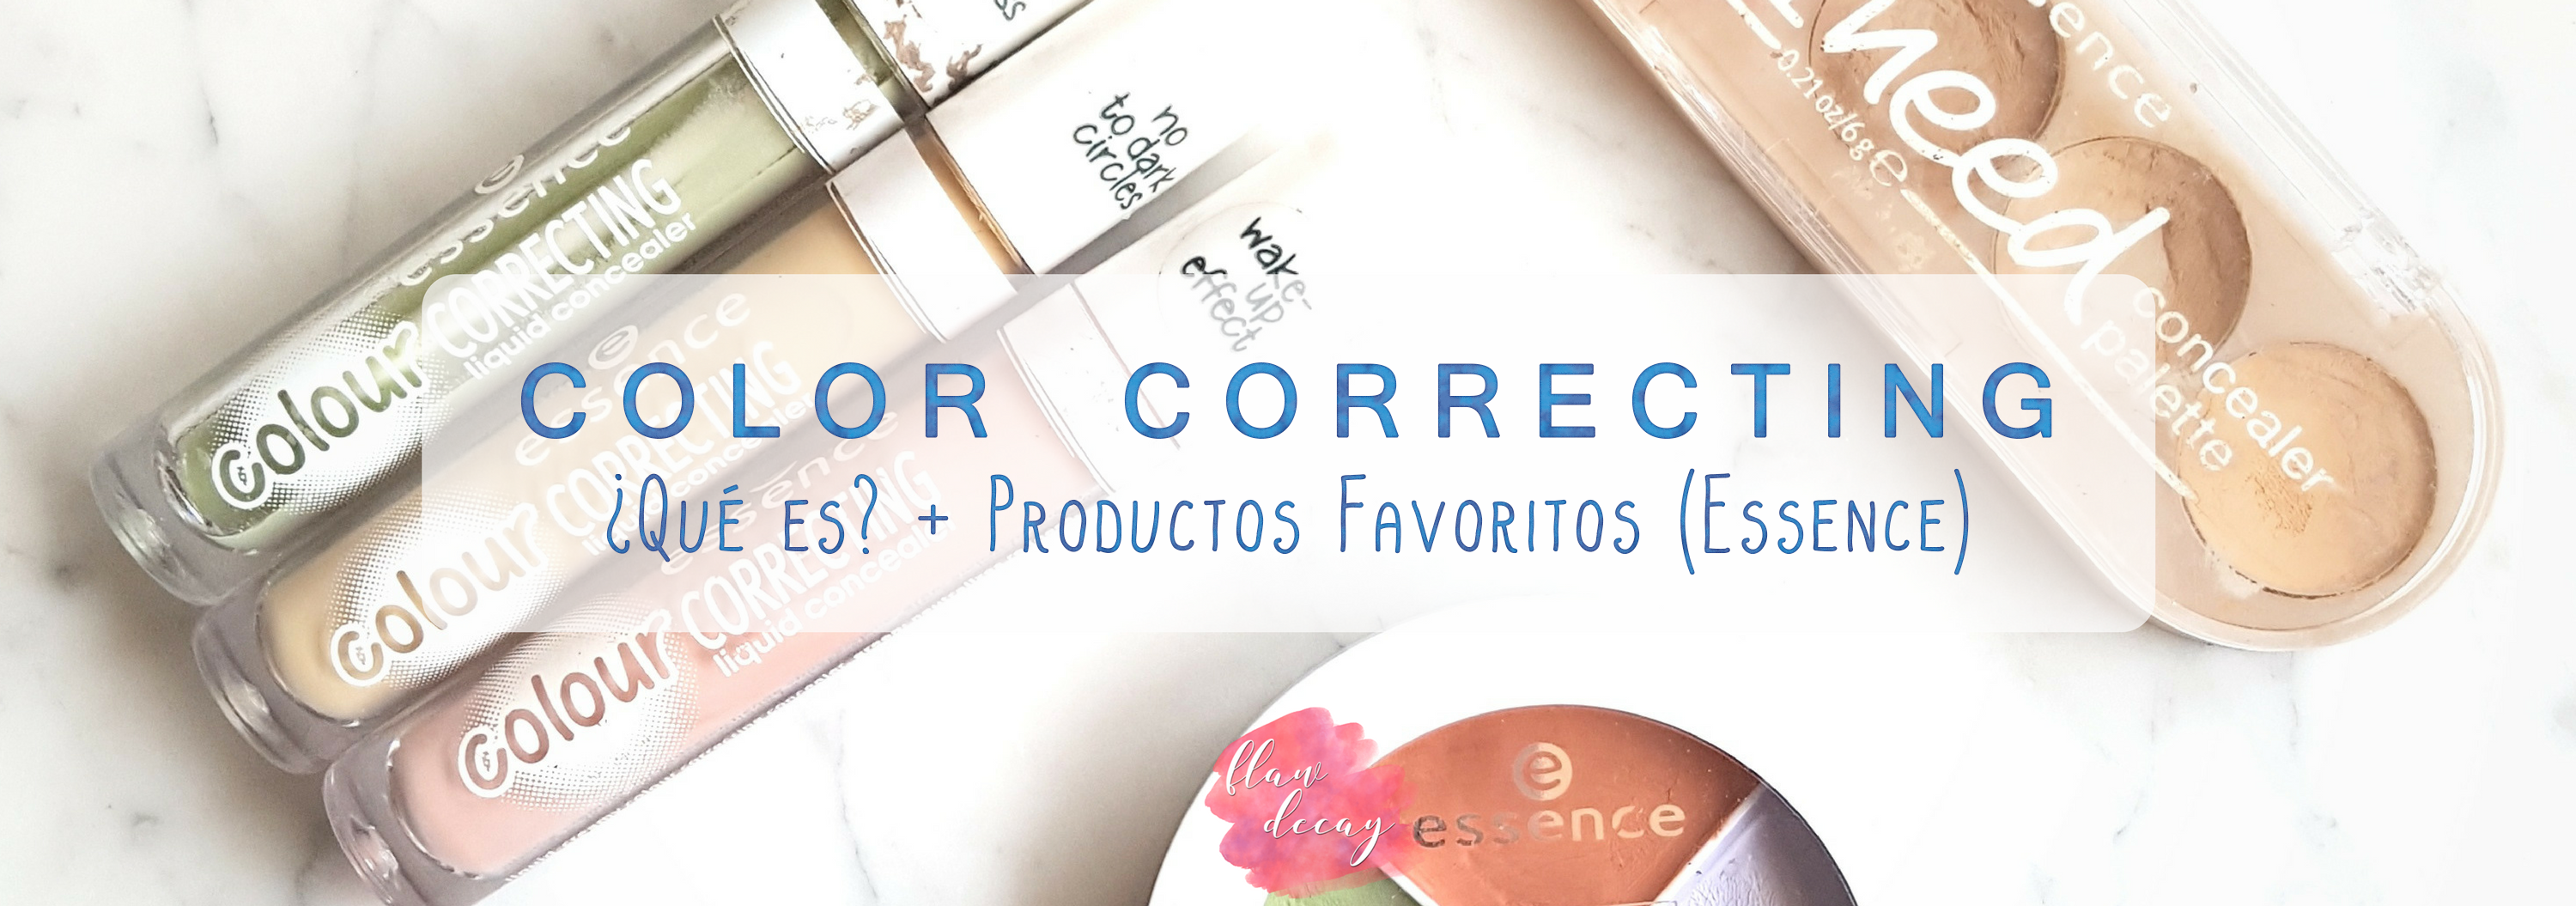 Color Correcting: ¿Qué es? + Productos Favoritos de Essence